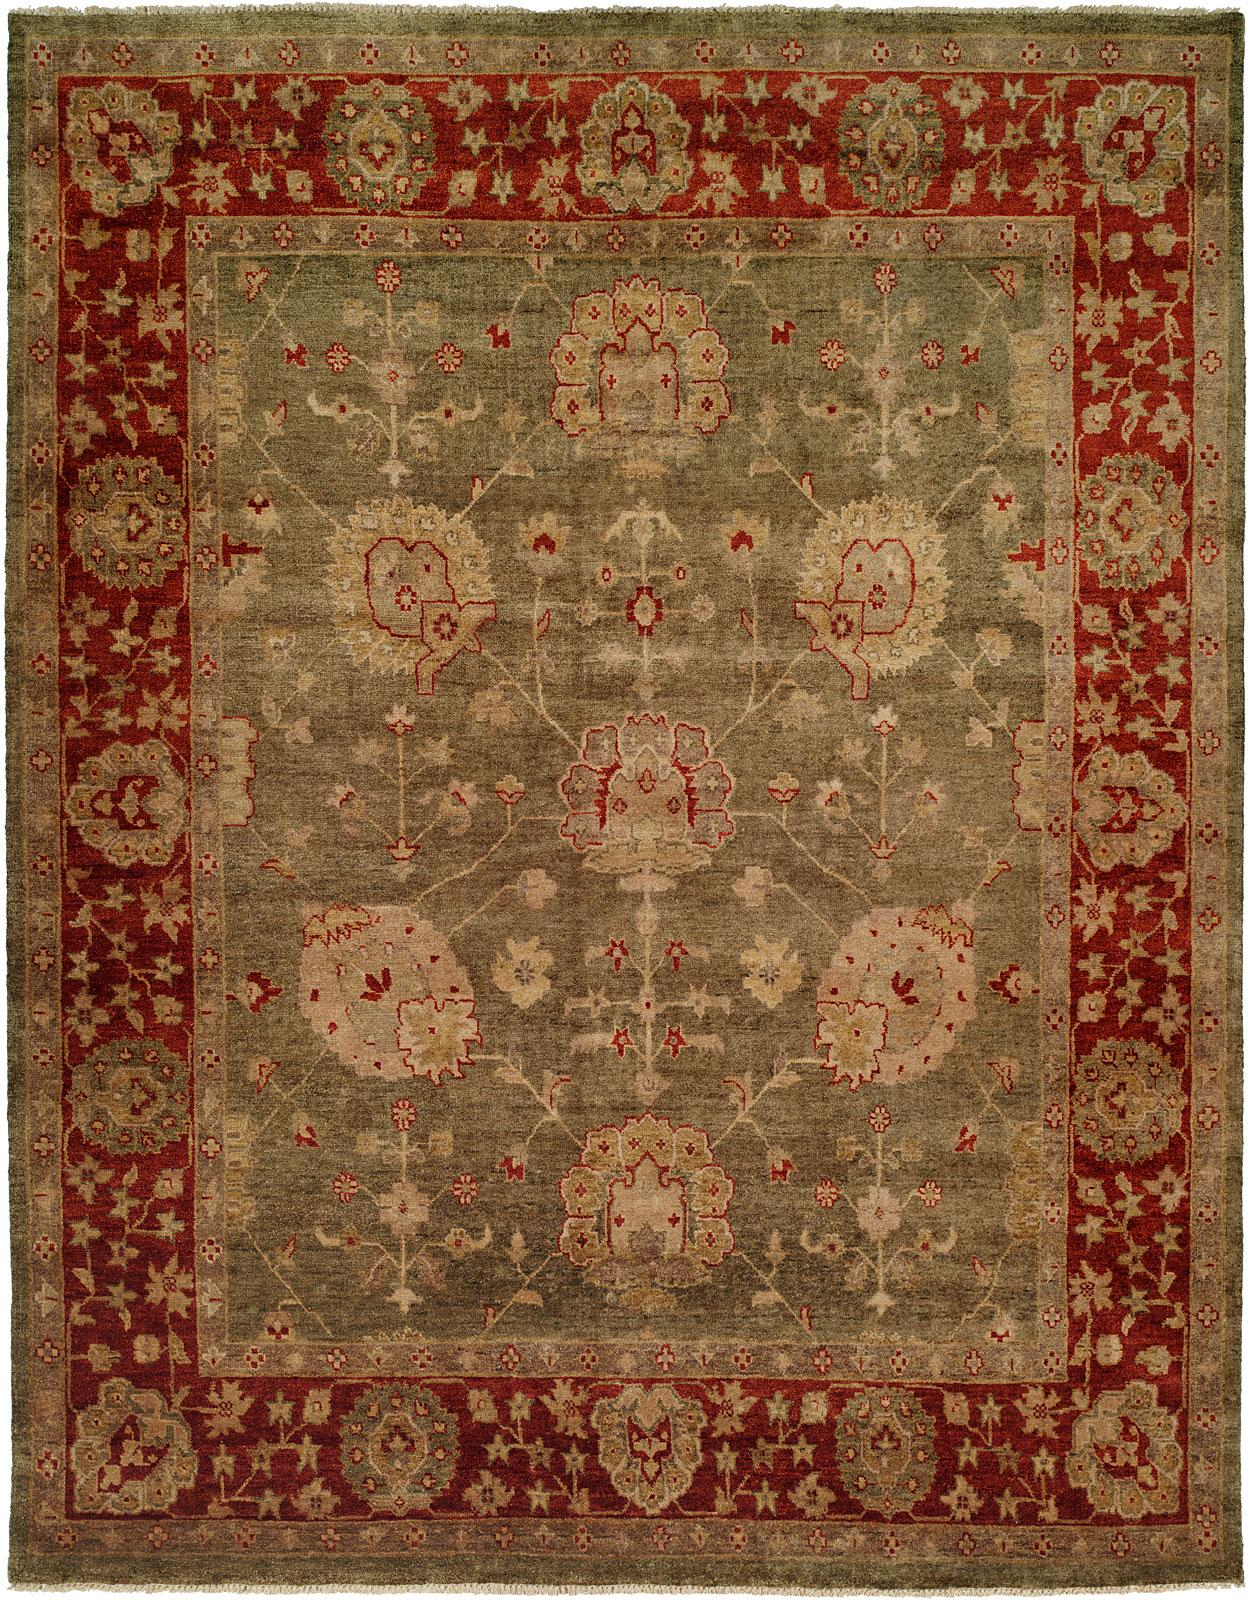 Green Field With Rust Red Border Area Rug